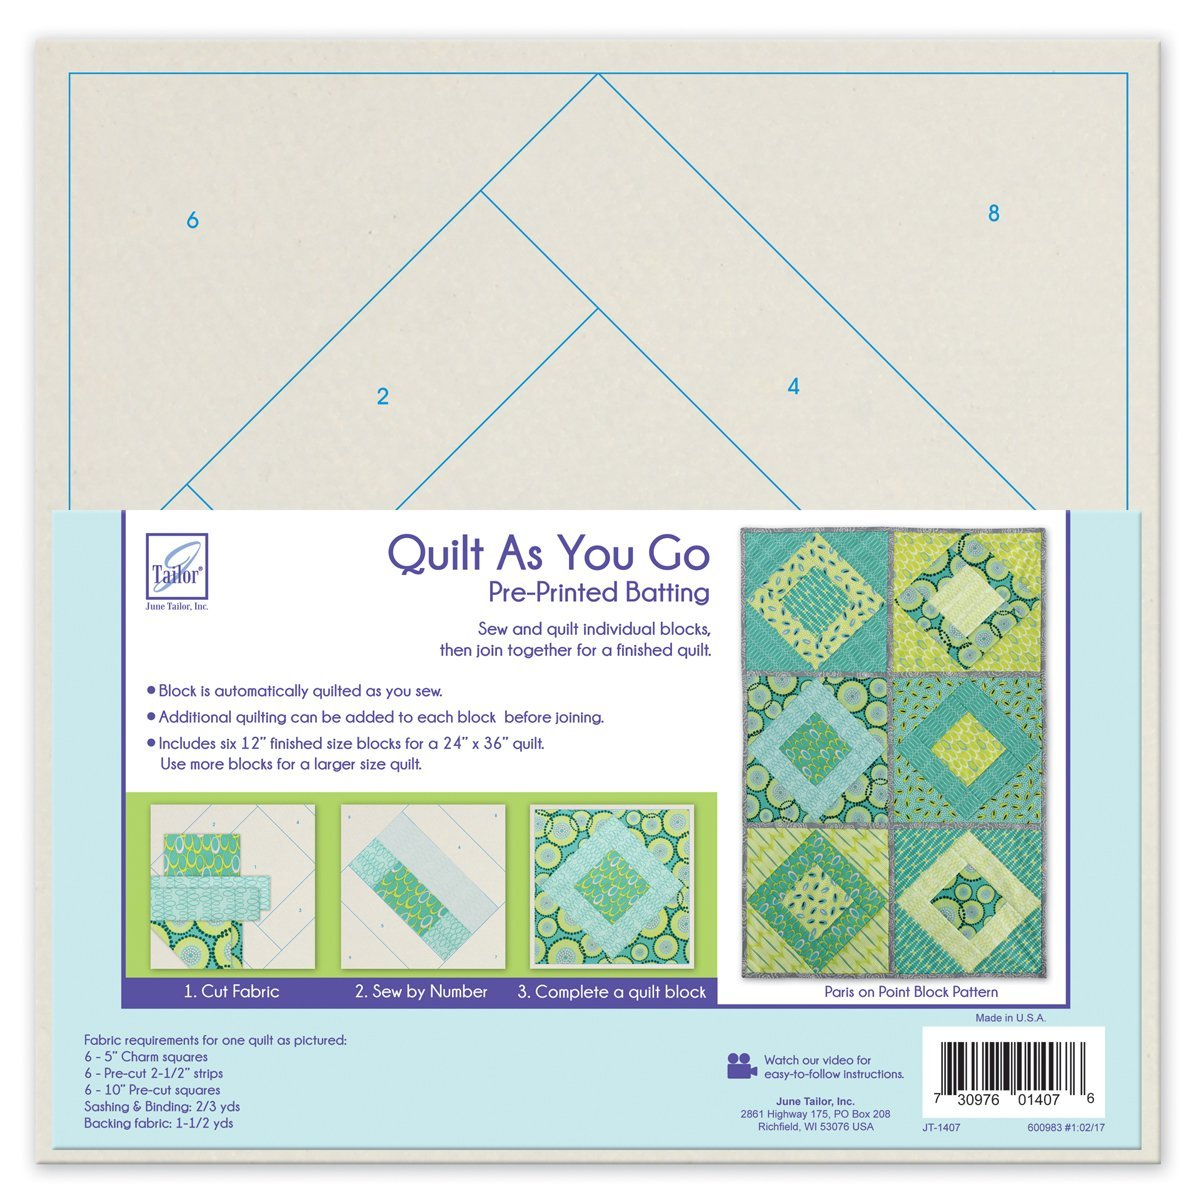 *PARIS ON POINT BLOCK PATTERN//QTY 6-12 BLOCKS//SIZE 24x36 WITH 6 BLOCKS//QUILT AS YOU GO//PRINTED BATTING//JUNE TAILOR INC